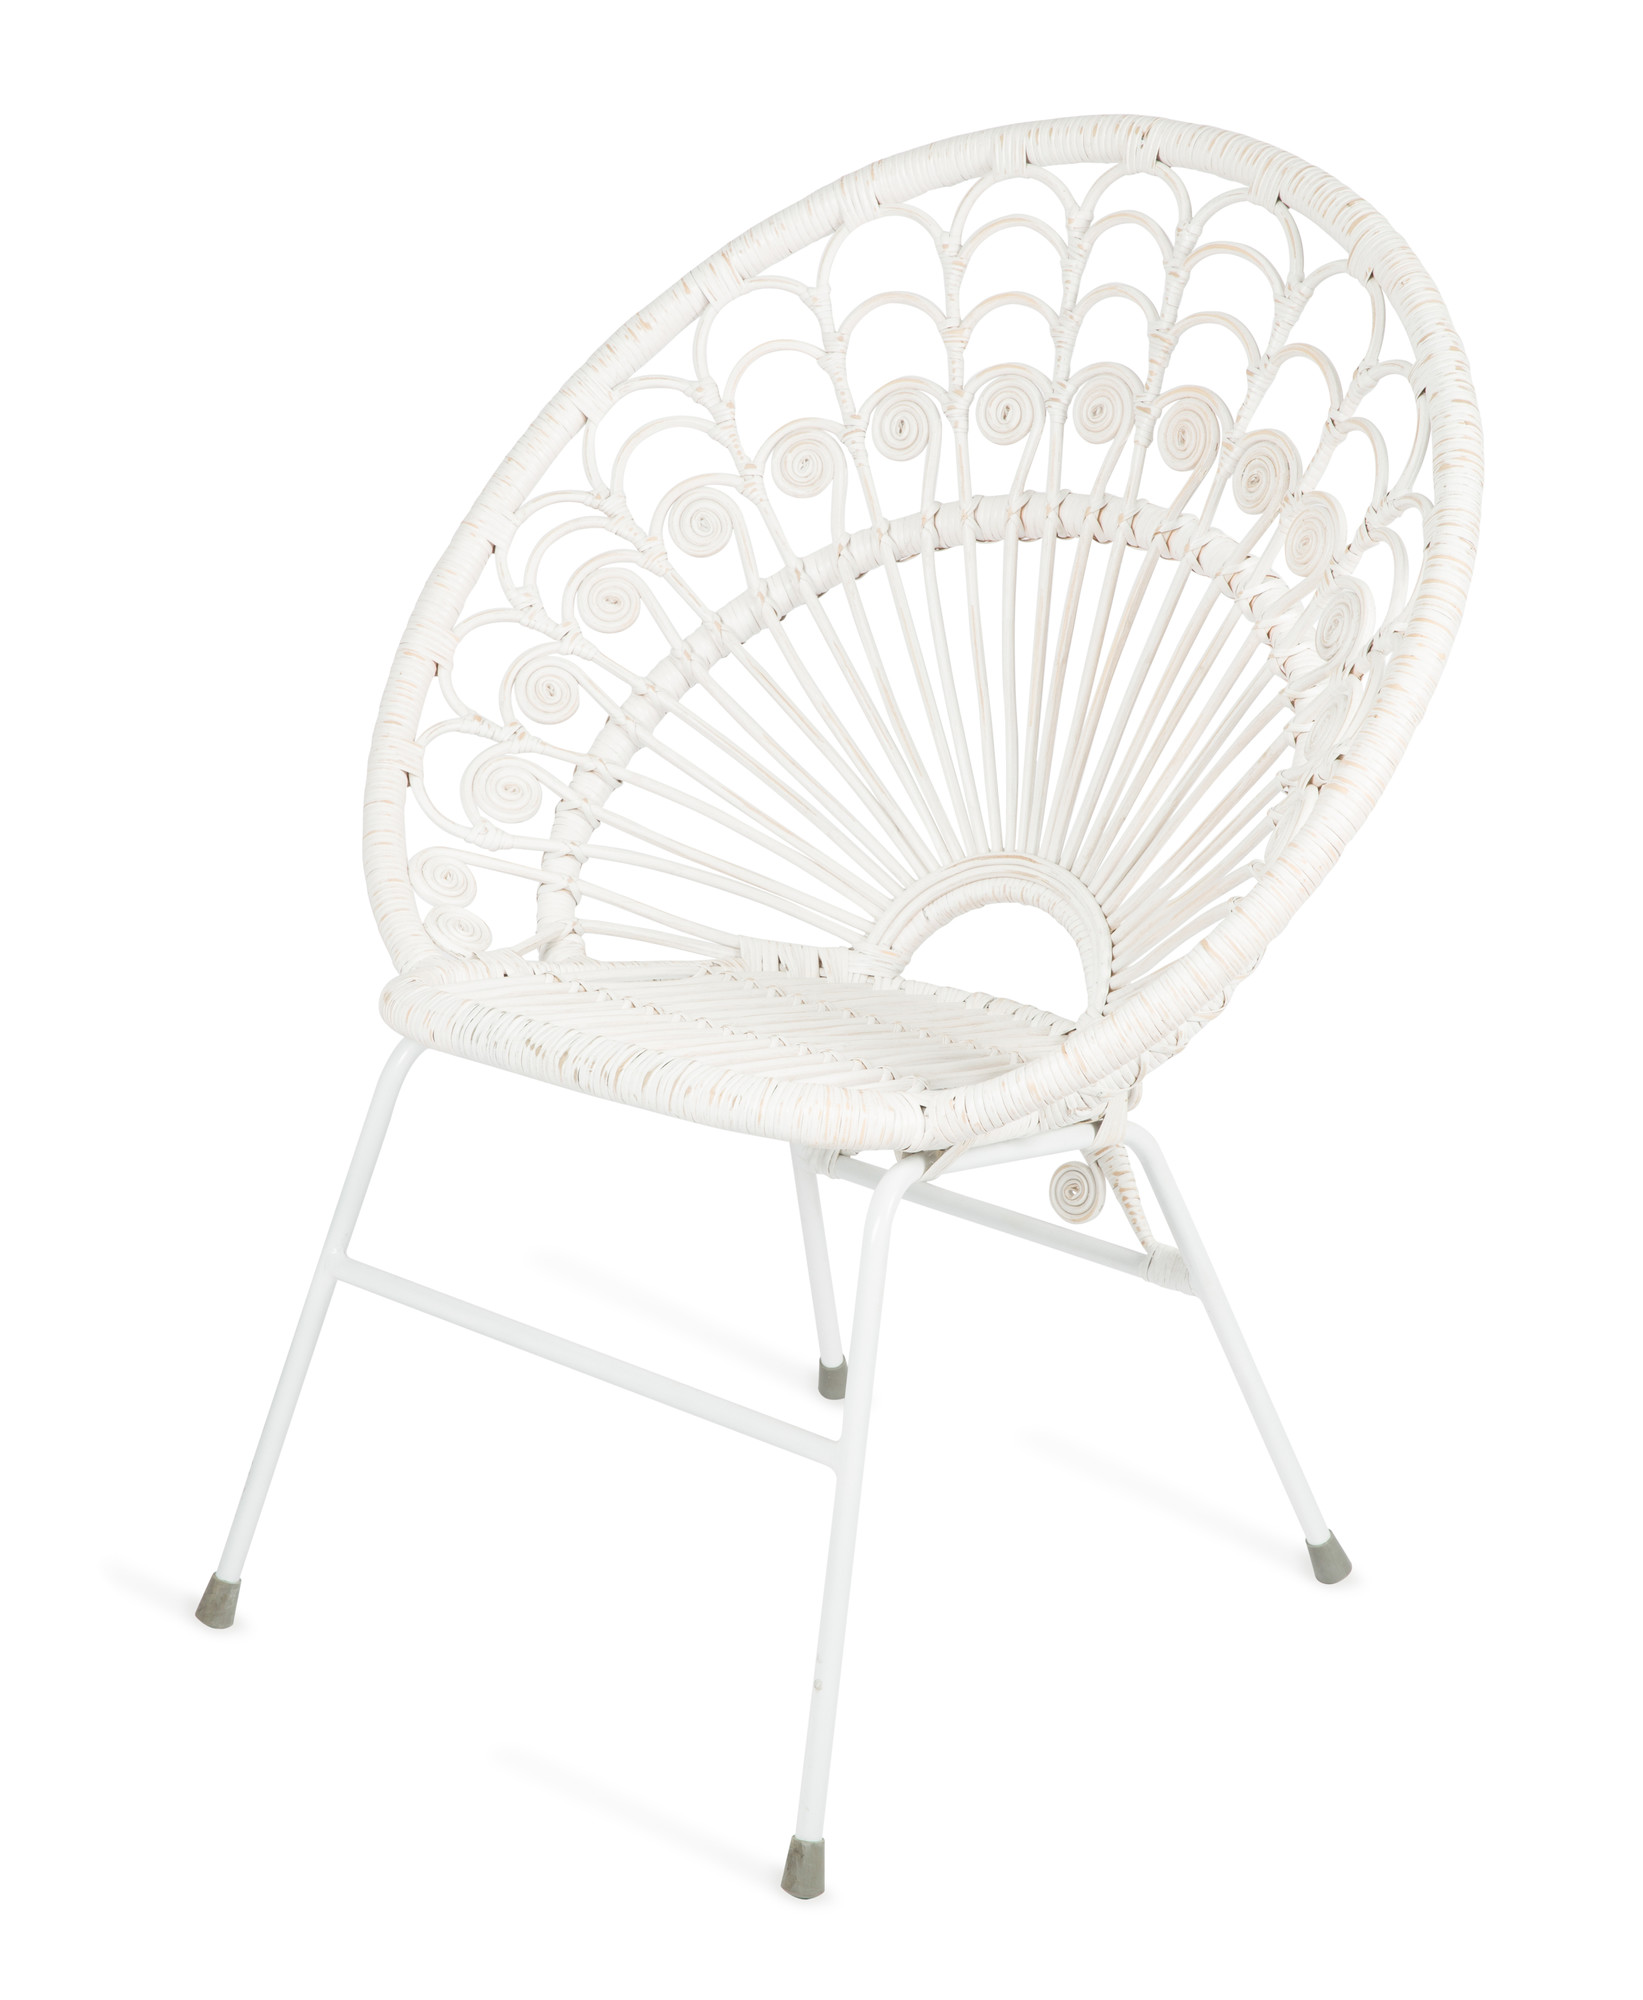 Bandung White Rattan Chair with Metal Legs